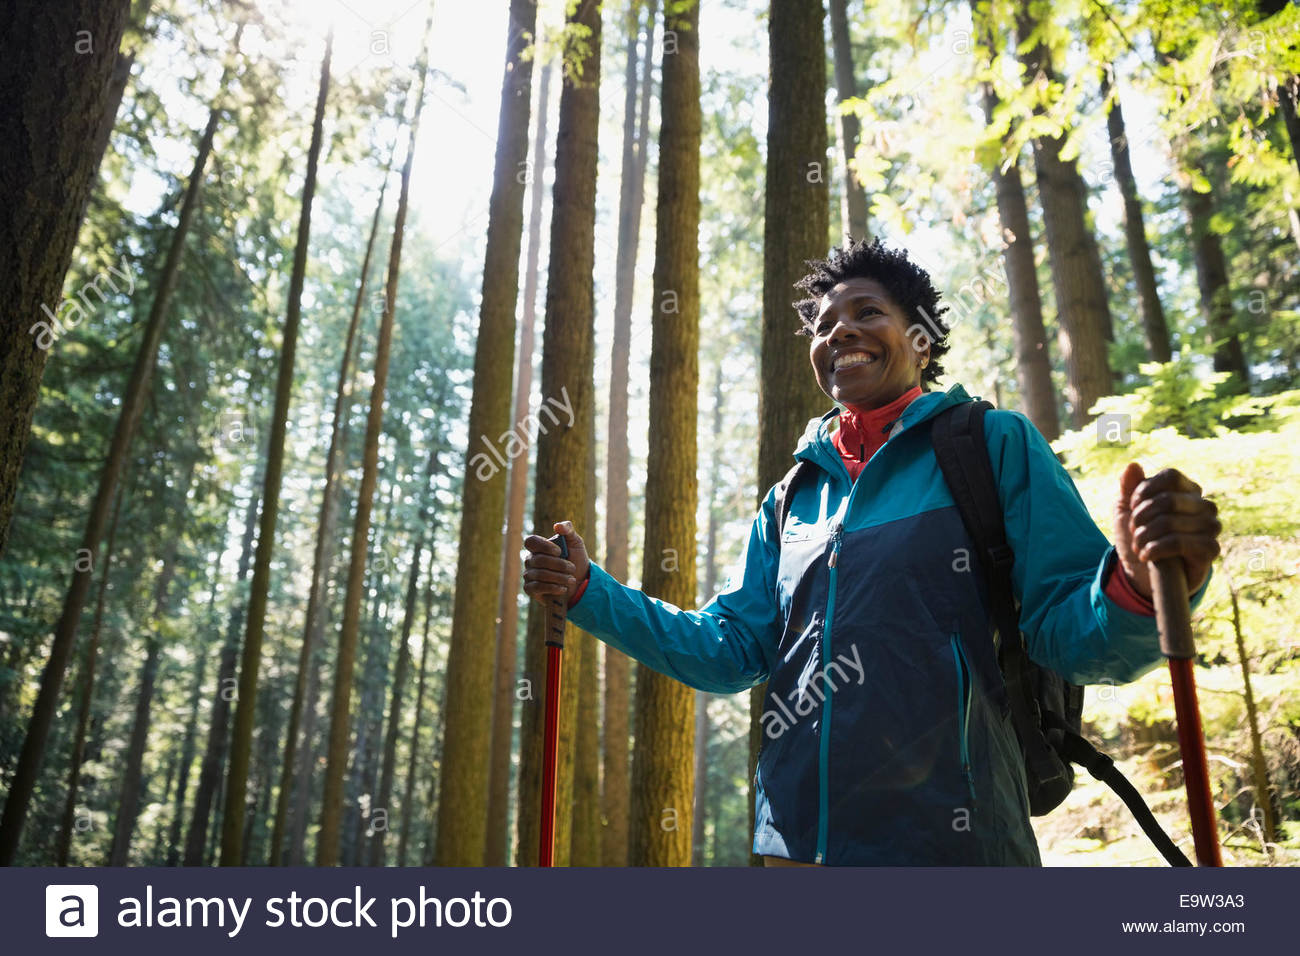 Smiling woman hiking below trees in sunny woods - Stock Image